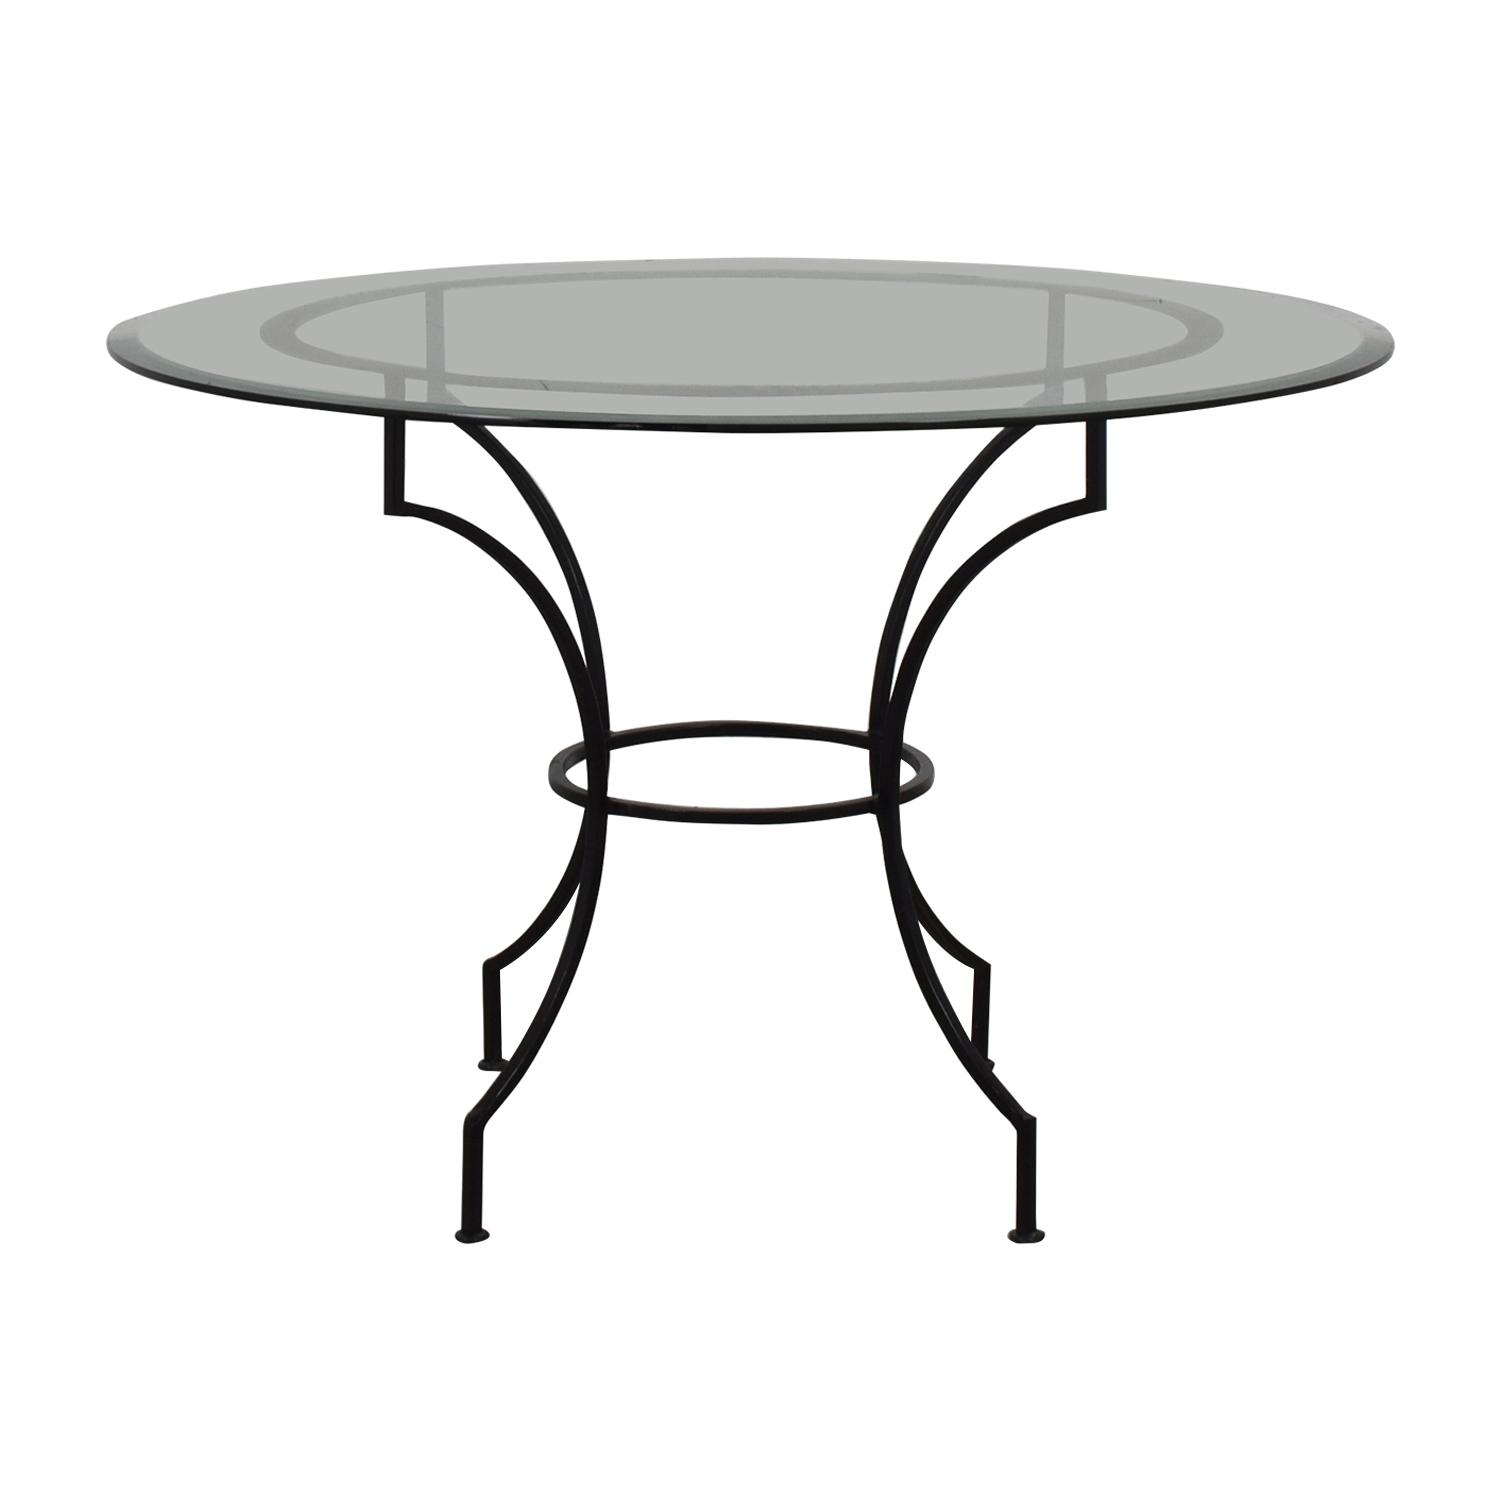 Pottery Barn Round Glass and Iron Base Table Pottery Barn